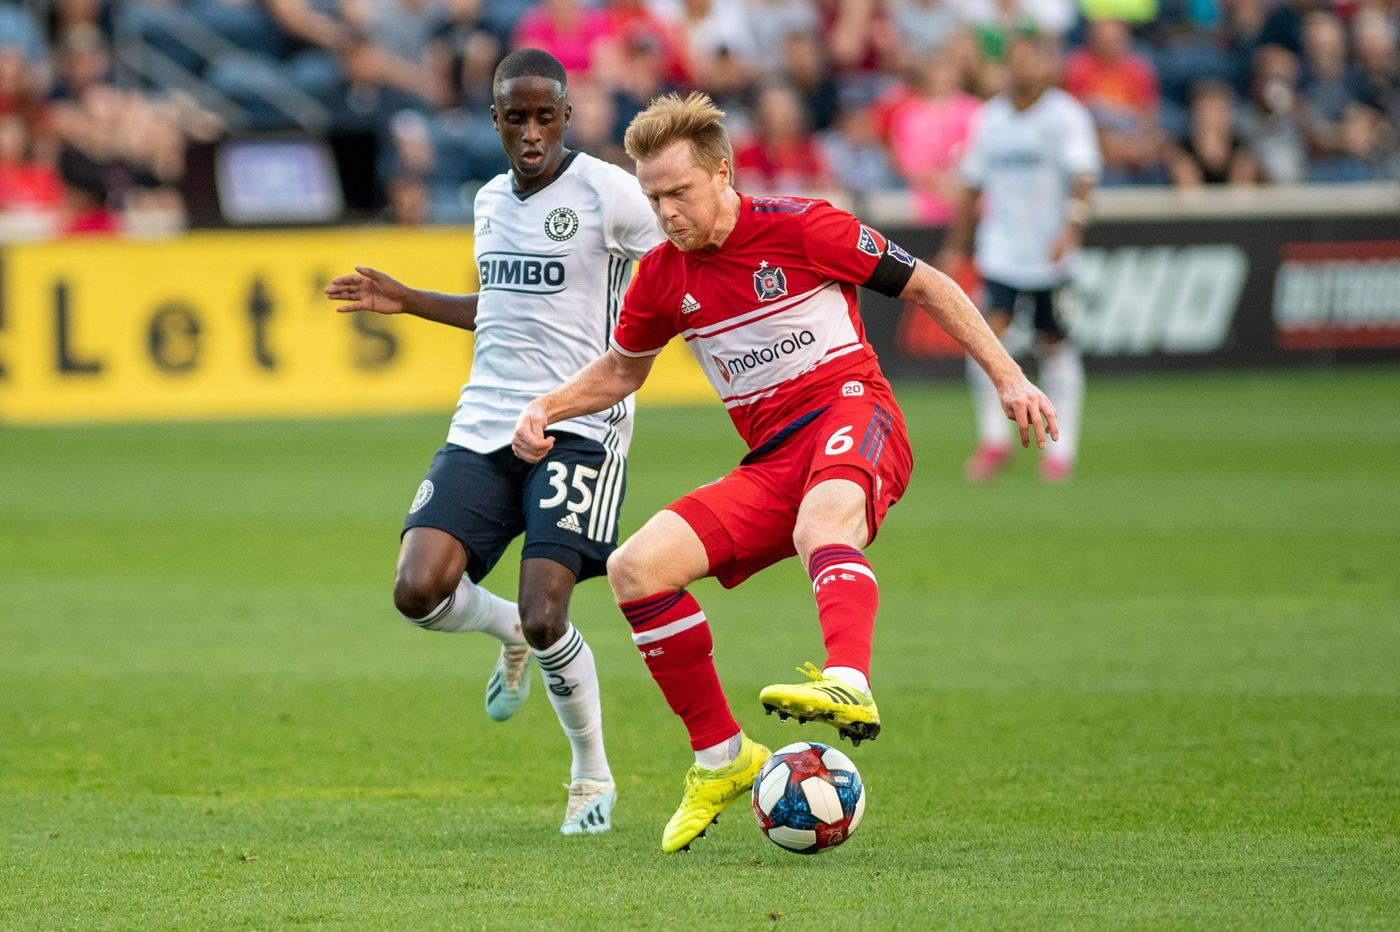 Union shut out, 2-0, by lowly Chicago Fire